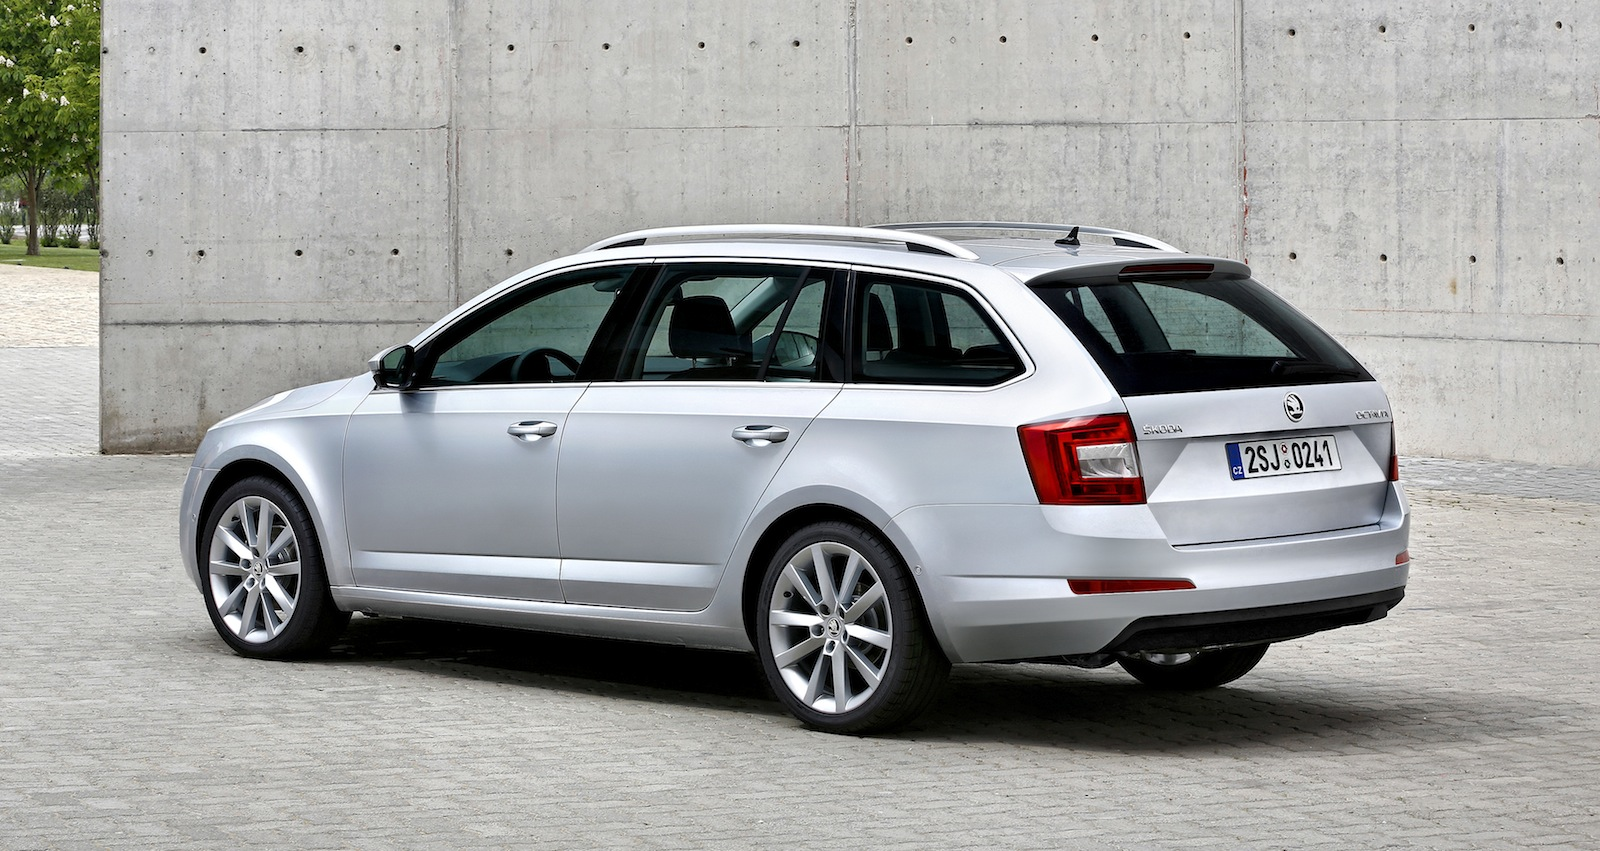 Pictures of skoda octavia iii 2013 #6